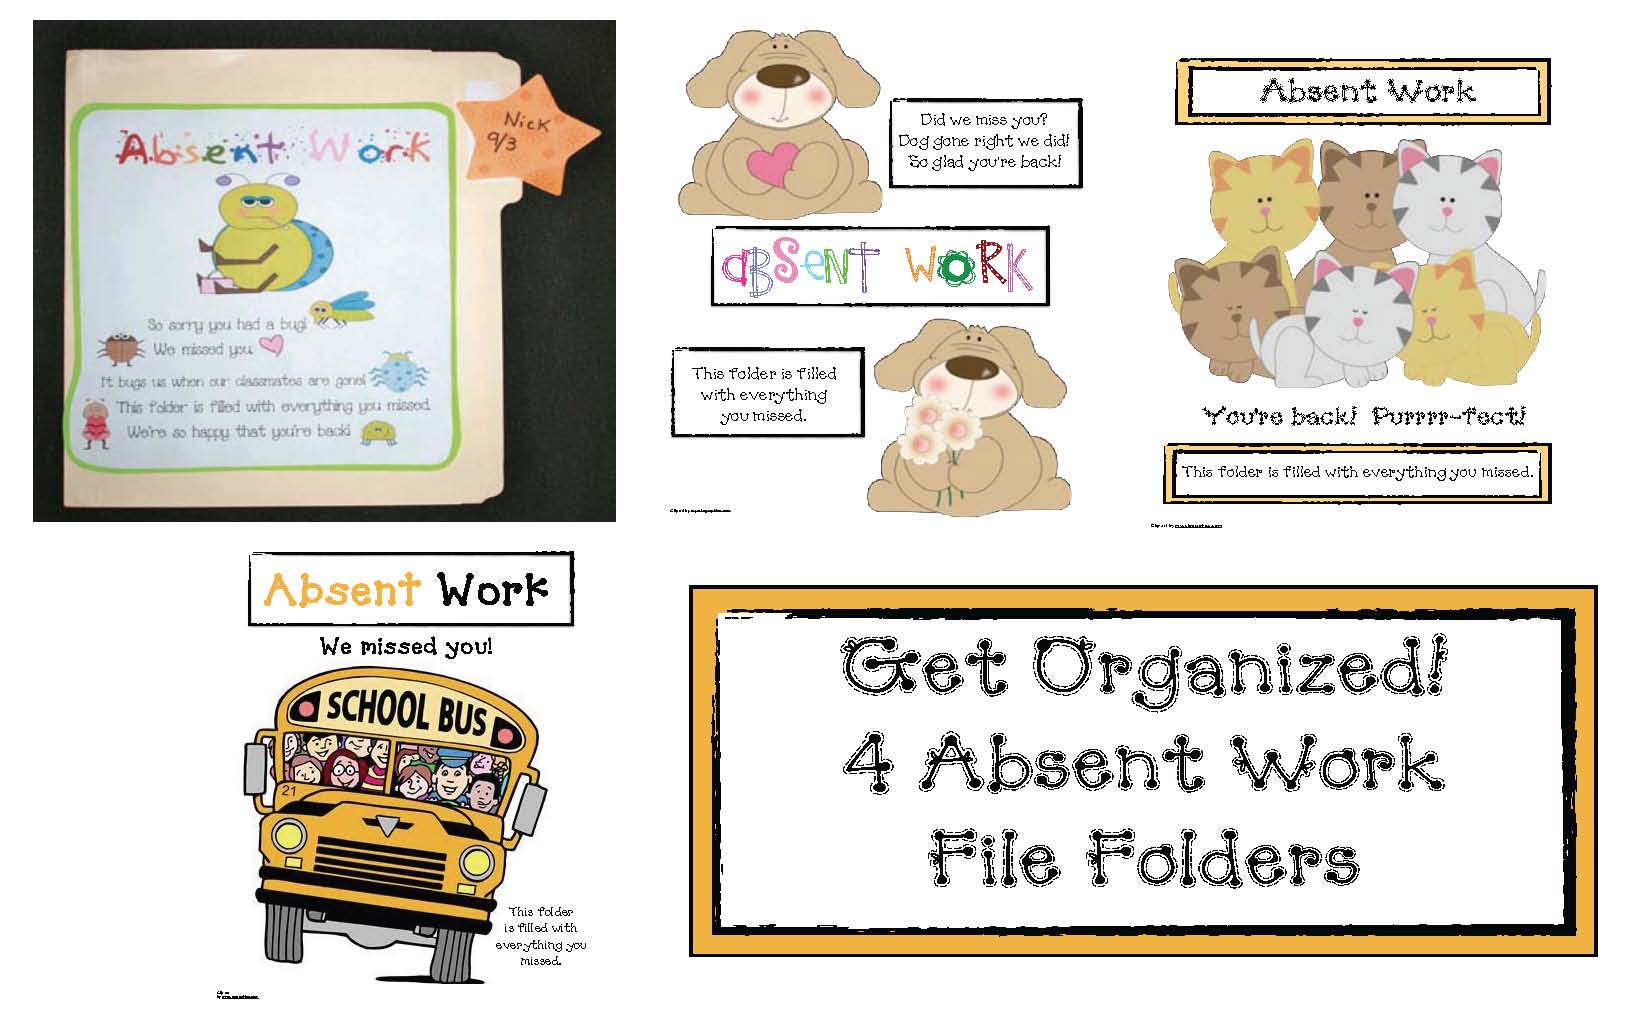 classroom management tips, classroom management ideas, absent work, homework tips, make up work tips, managing make up work, get well cards for kids, color me get well cards, get well cards to give to students, managing missed work, absent folders